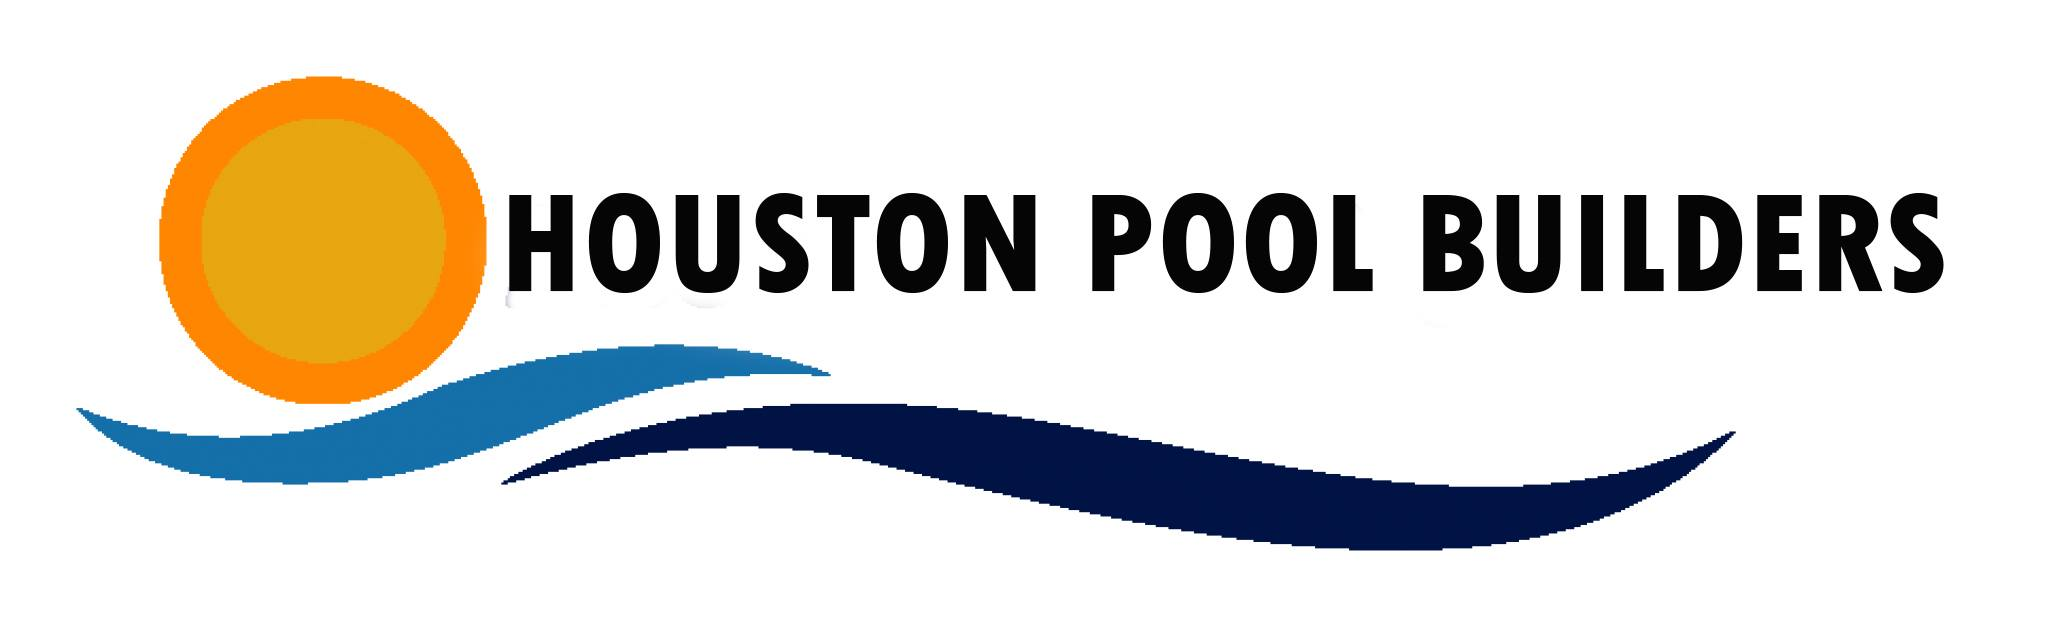 houston pool builders logo